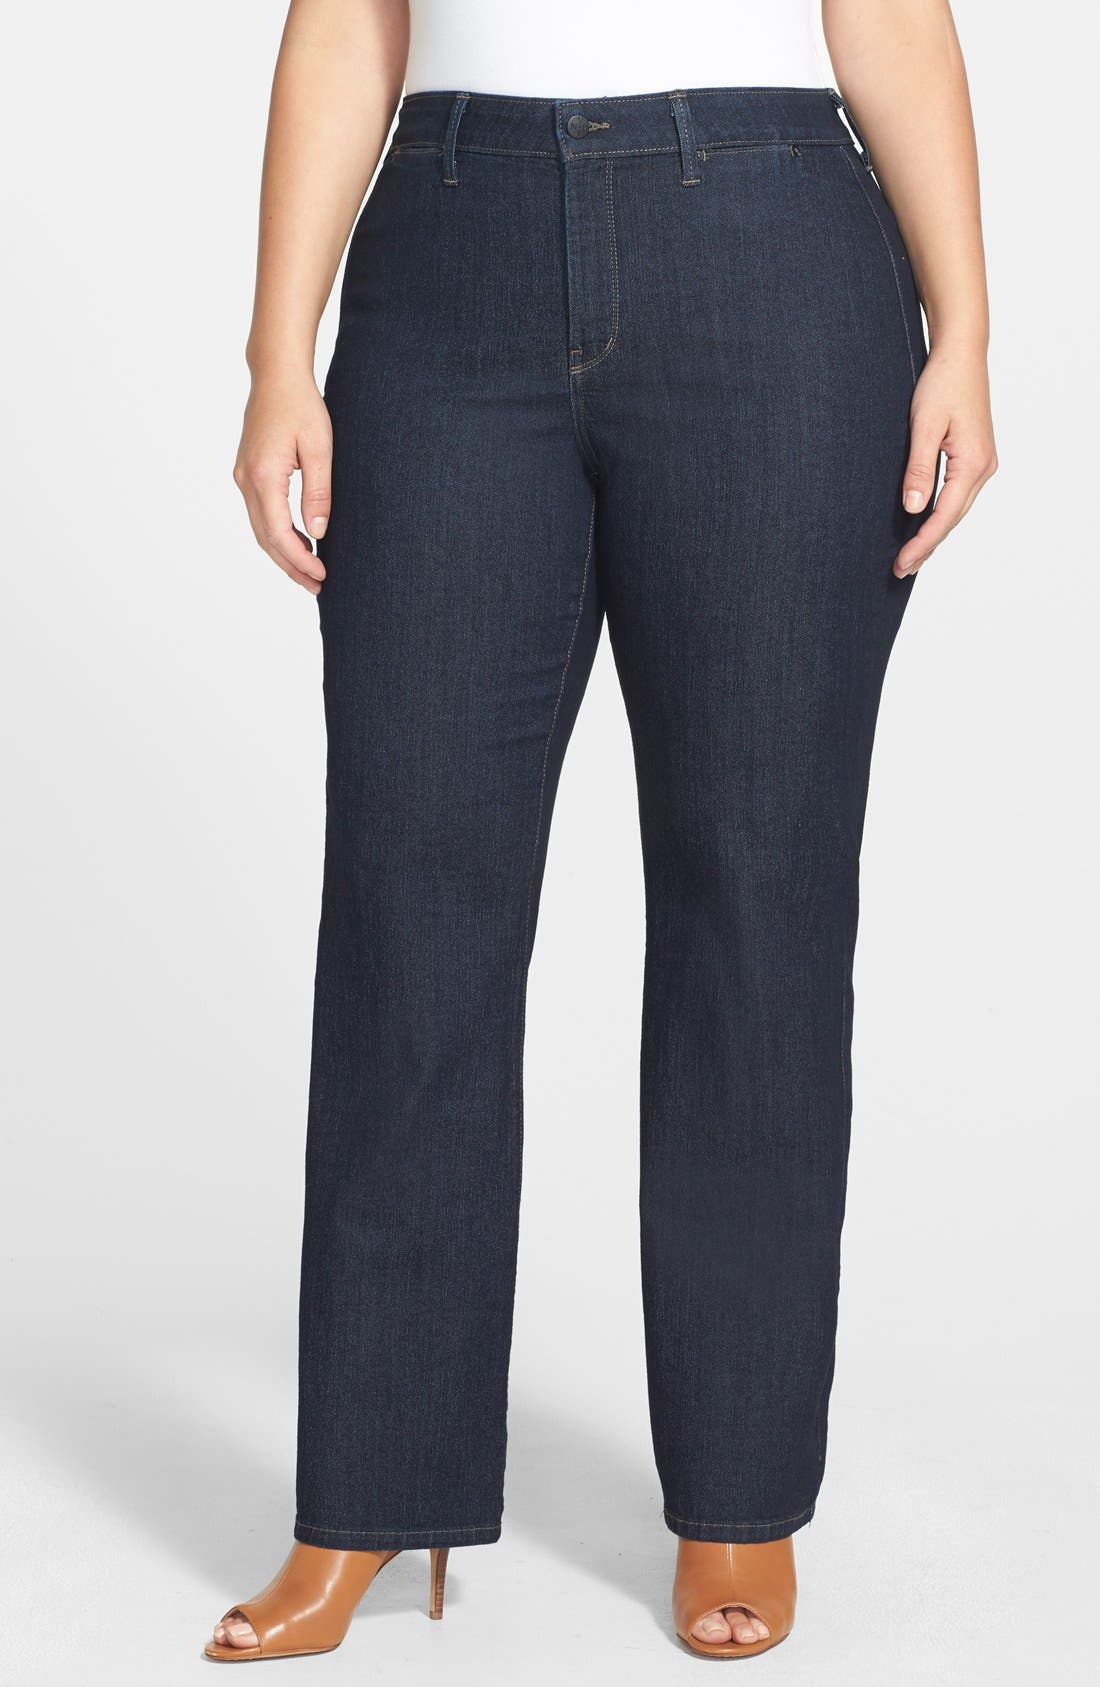 NYDJ 'Isabella' High Rise Stretch Trouser Jeans, Main, color, DARK ENZYME